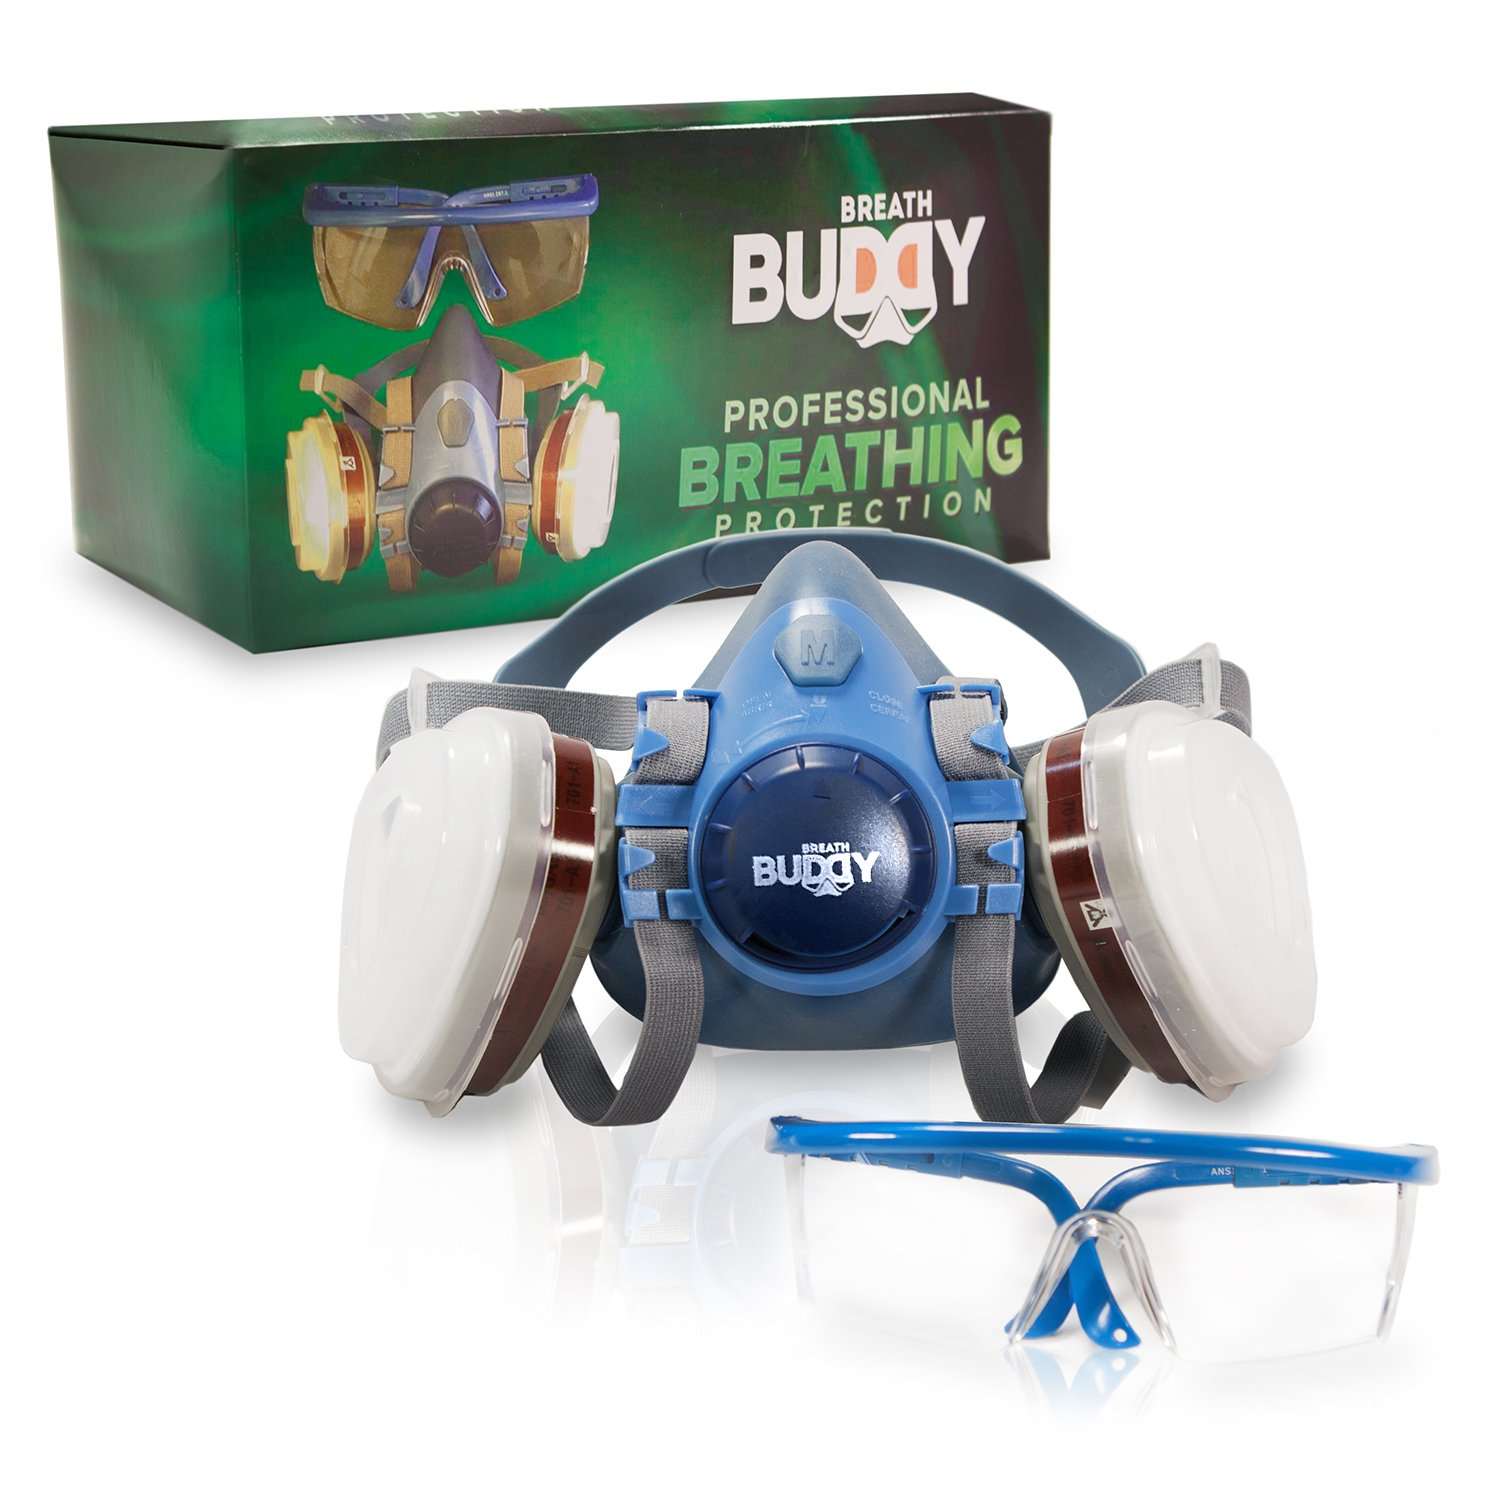 Breath Buddy Respirator Mask (Plus Safety Glasses) | Reusable Professional Breathing Protection Against Dust, Particle, Woodworking and Organic Vapors & Fumes | Perfect For Painters and DIY Projects by Breath Buddy